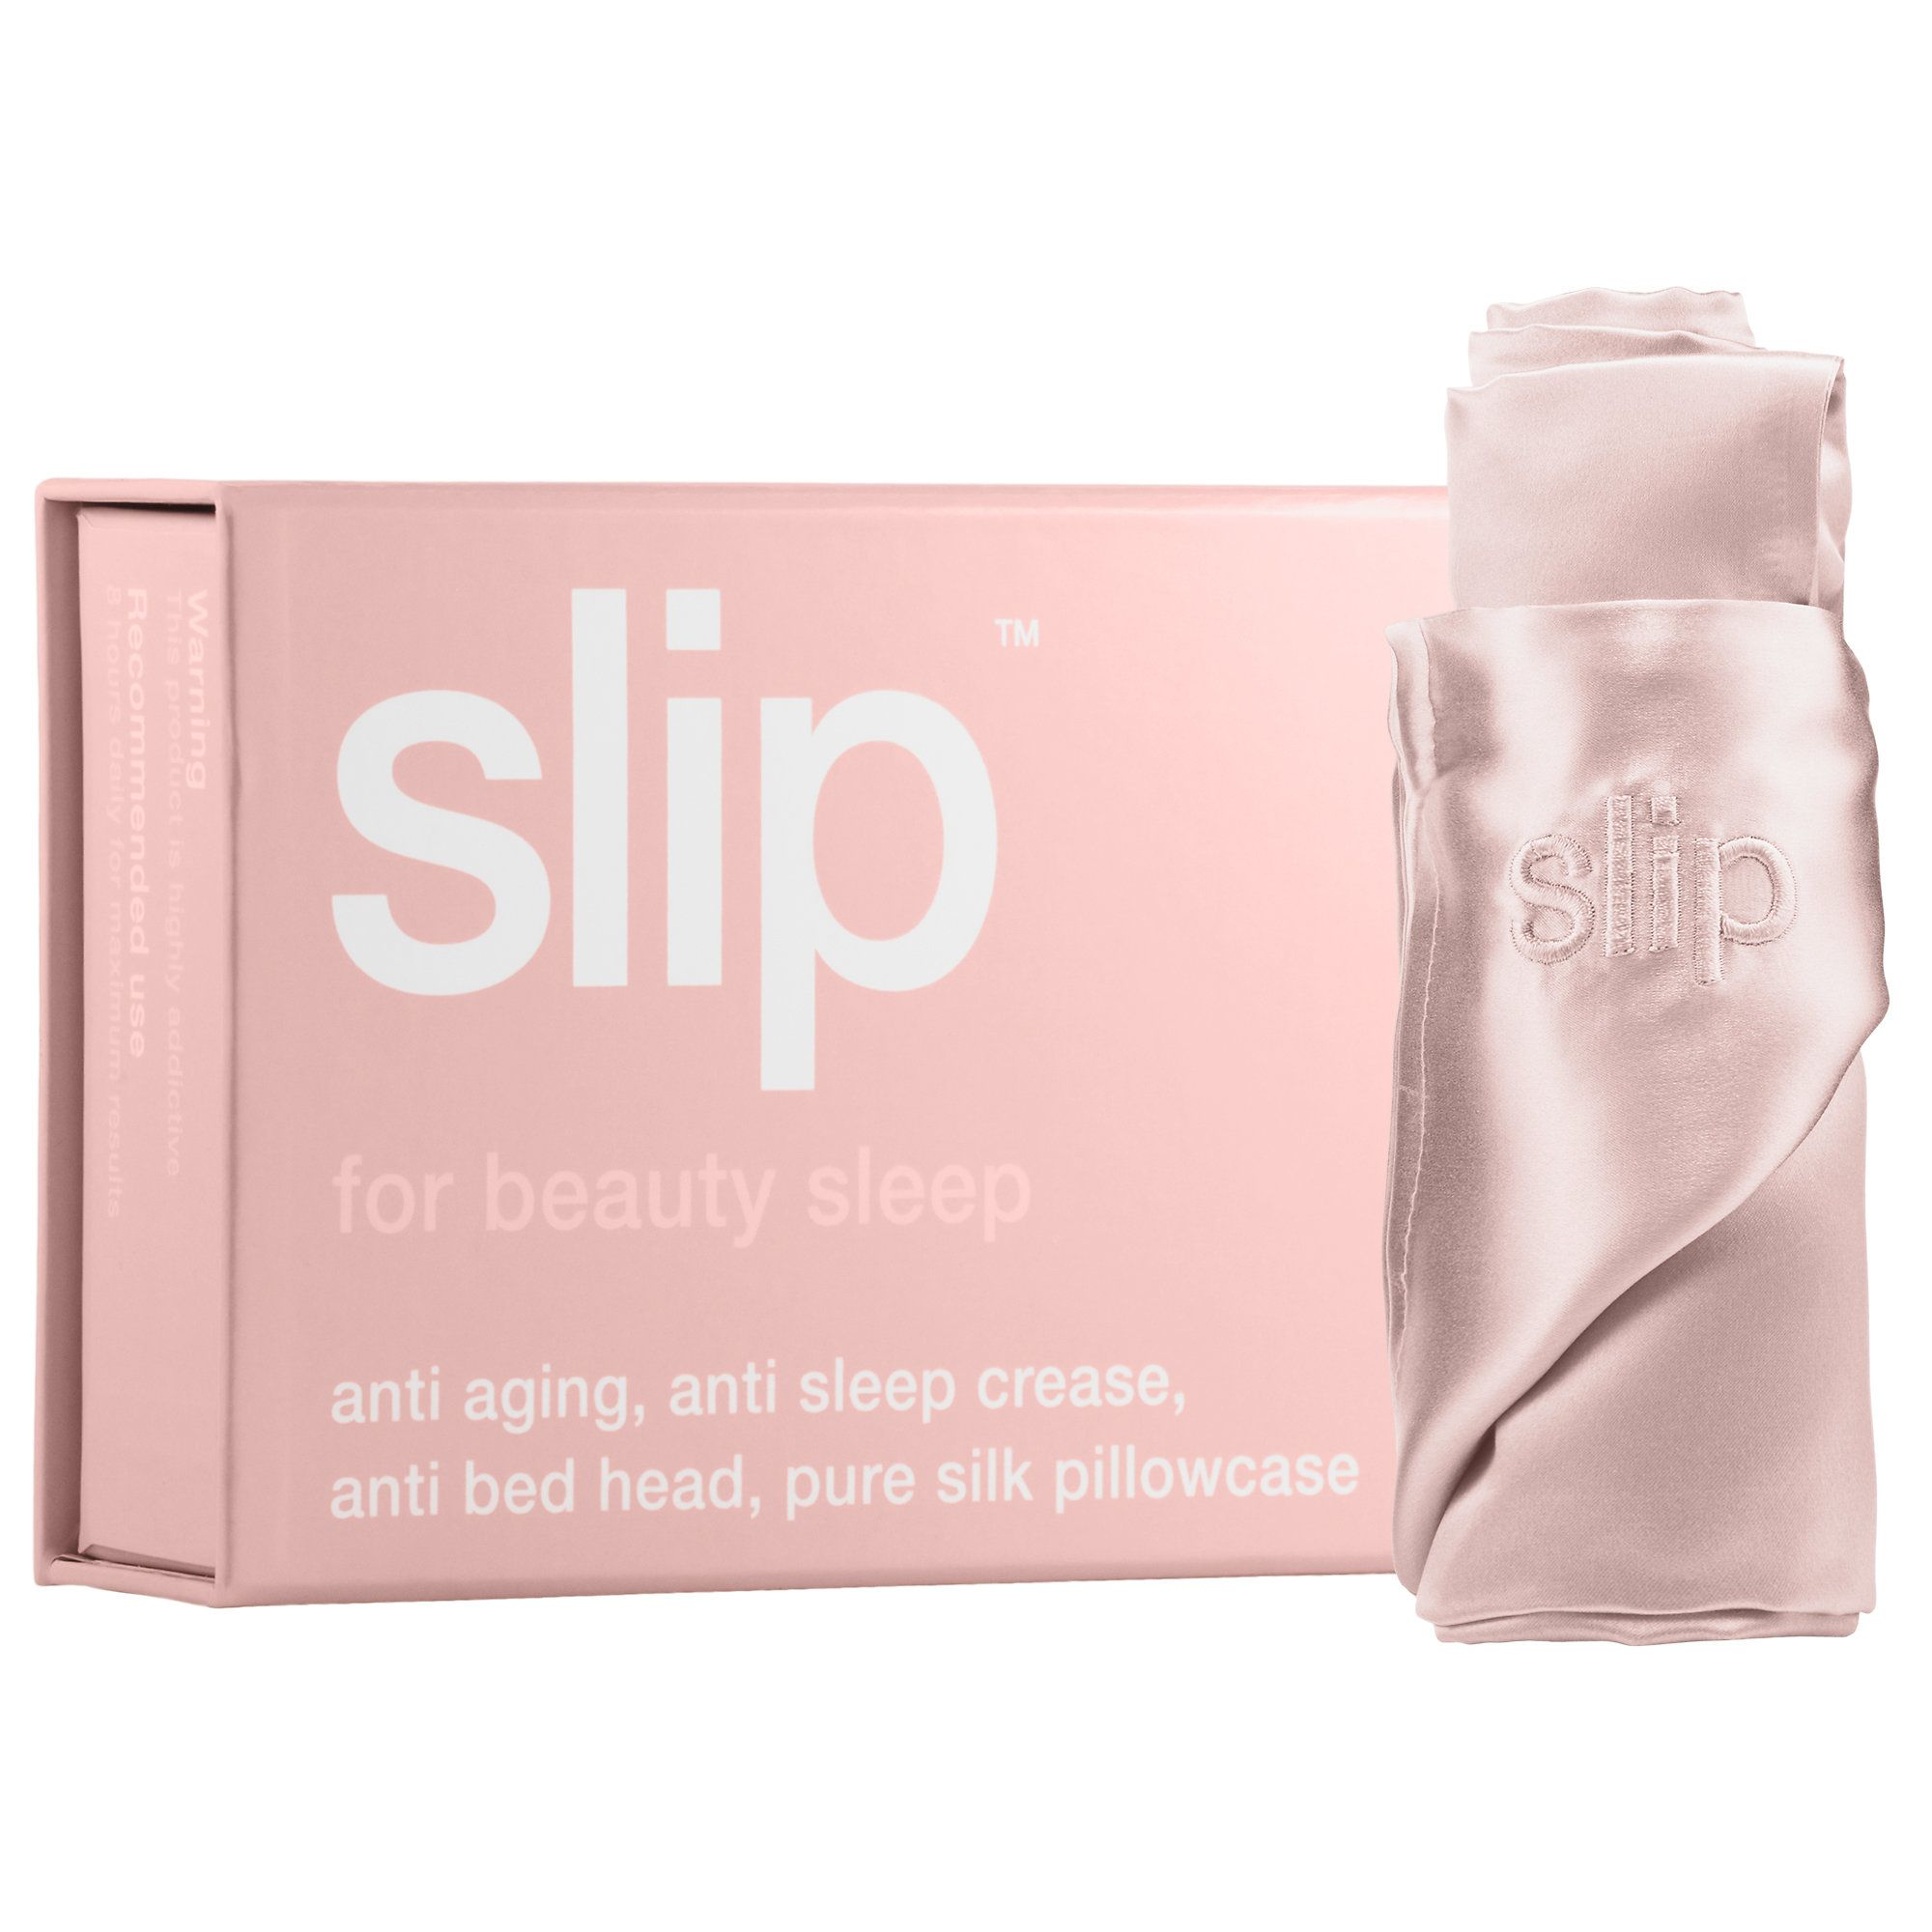 Slip Pillowcase Review Simple Shop Slip Beauty's Queen Silk Pillowcase At Sephorathe Antiaging Review